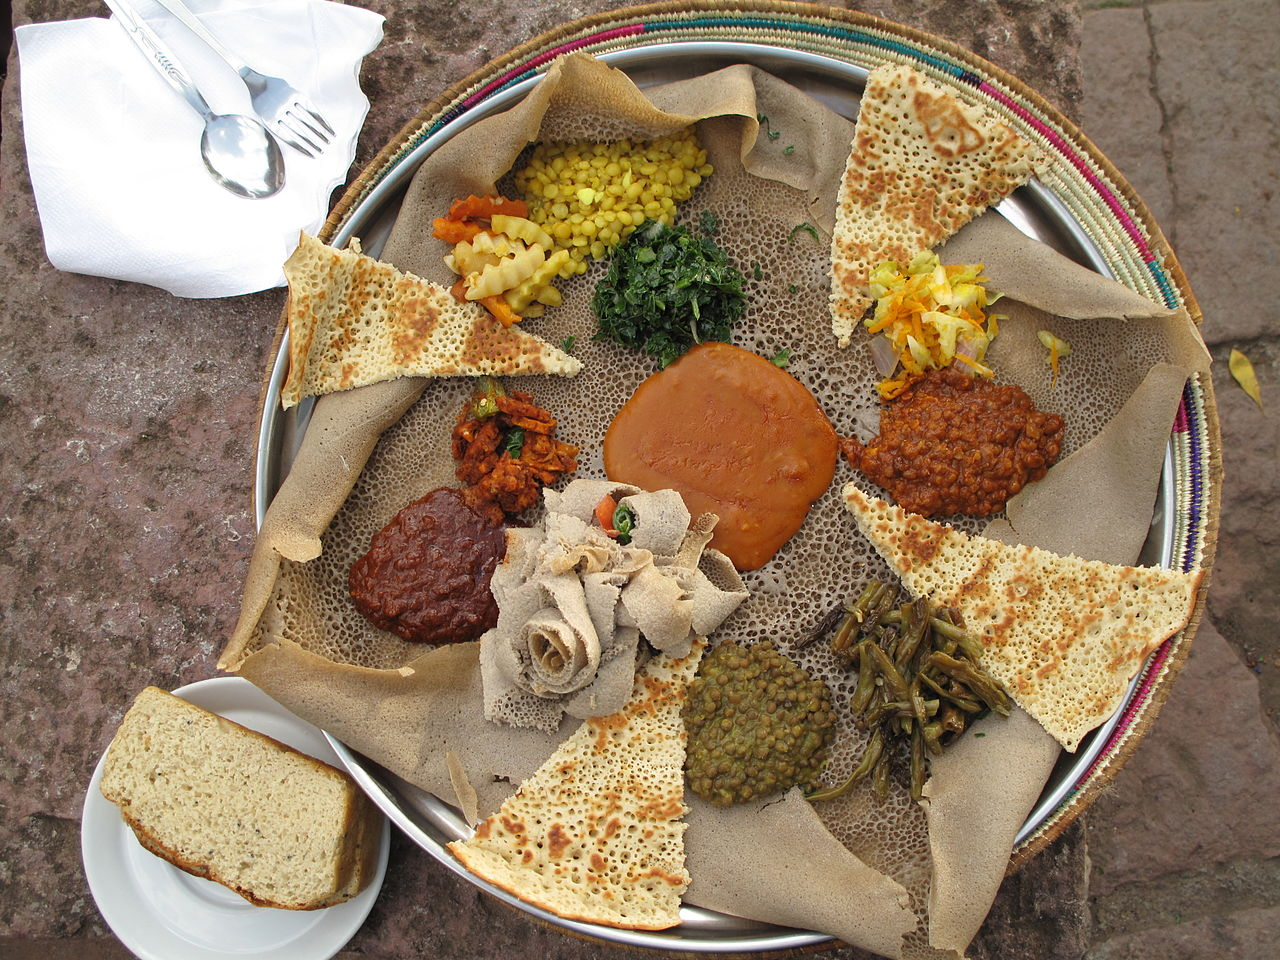 Injera vegan dishes in Ethiopia